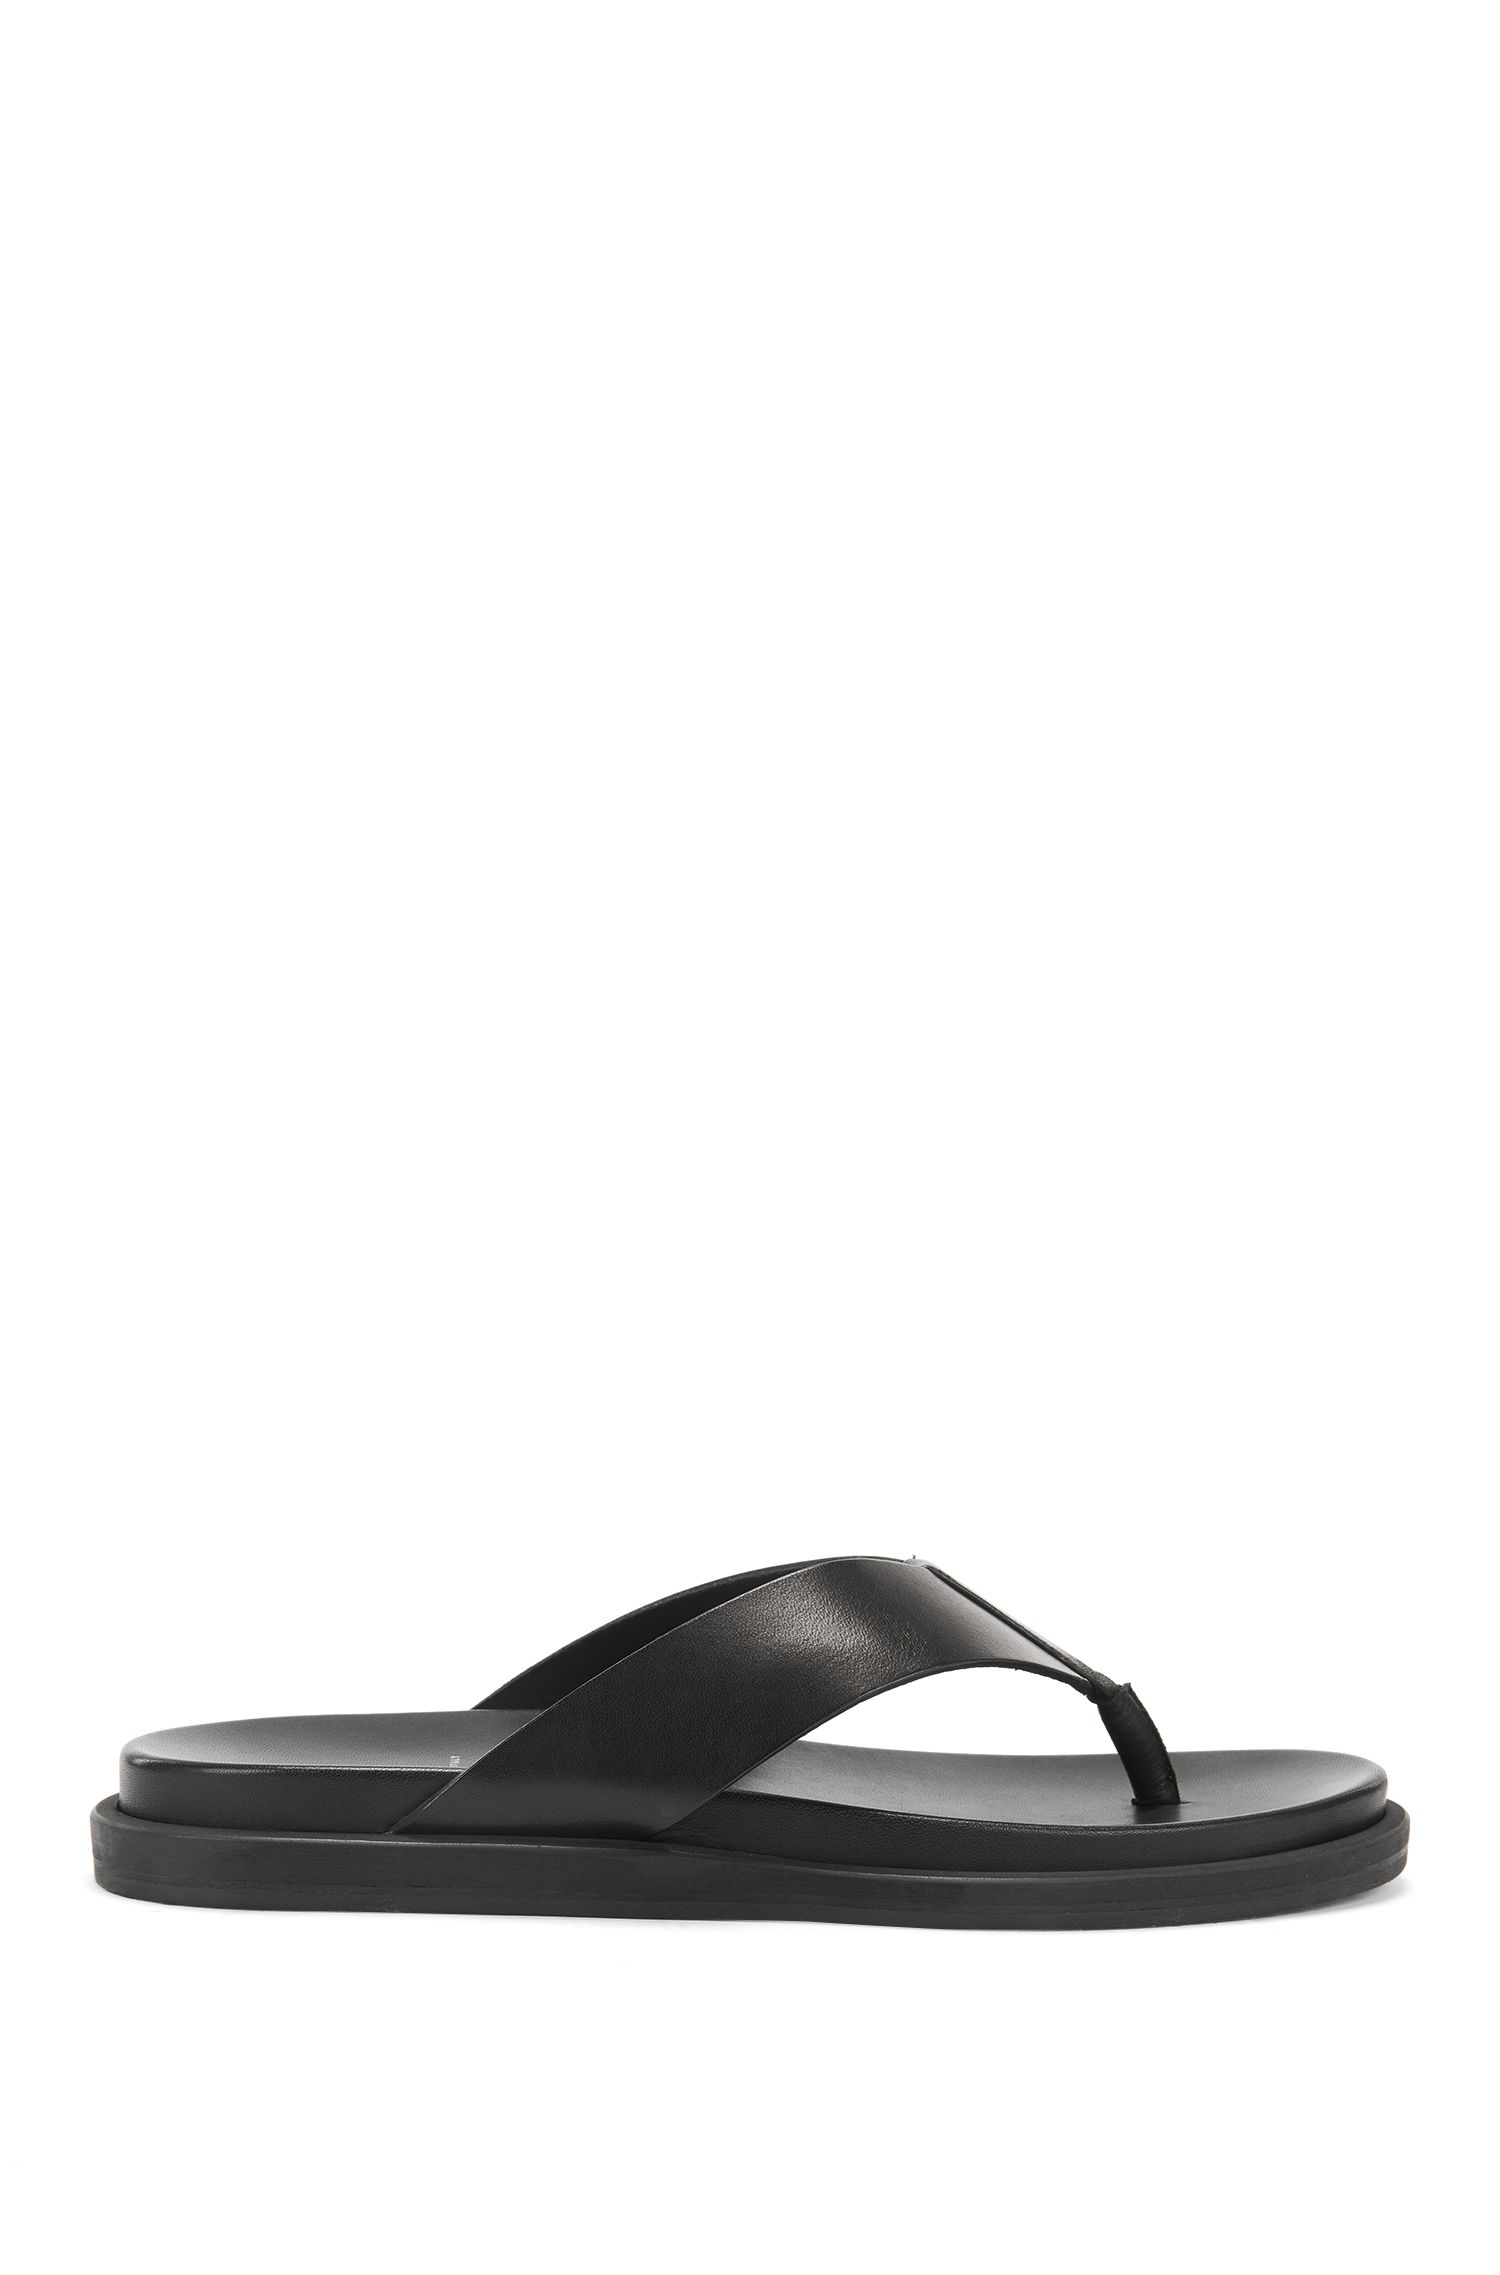 Leather Thong Sandal | Hamptons Thon Ltva, Black